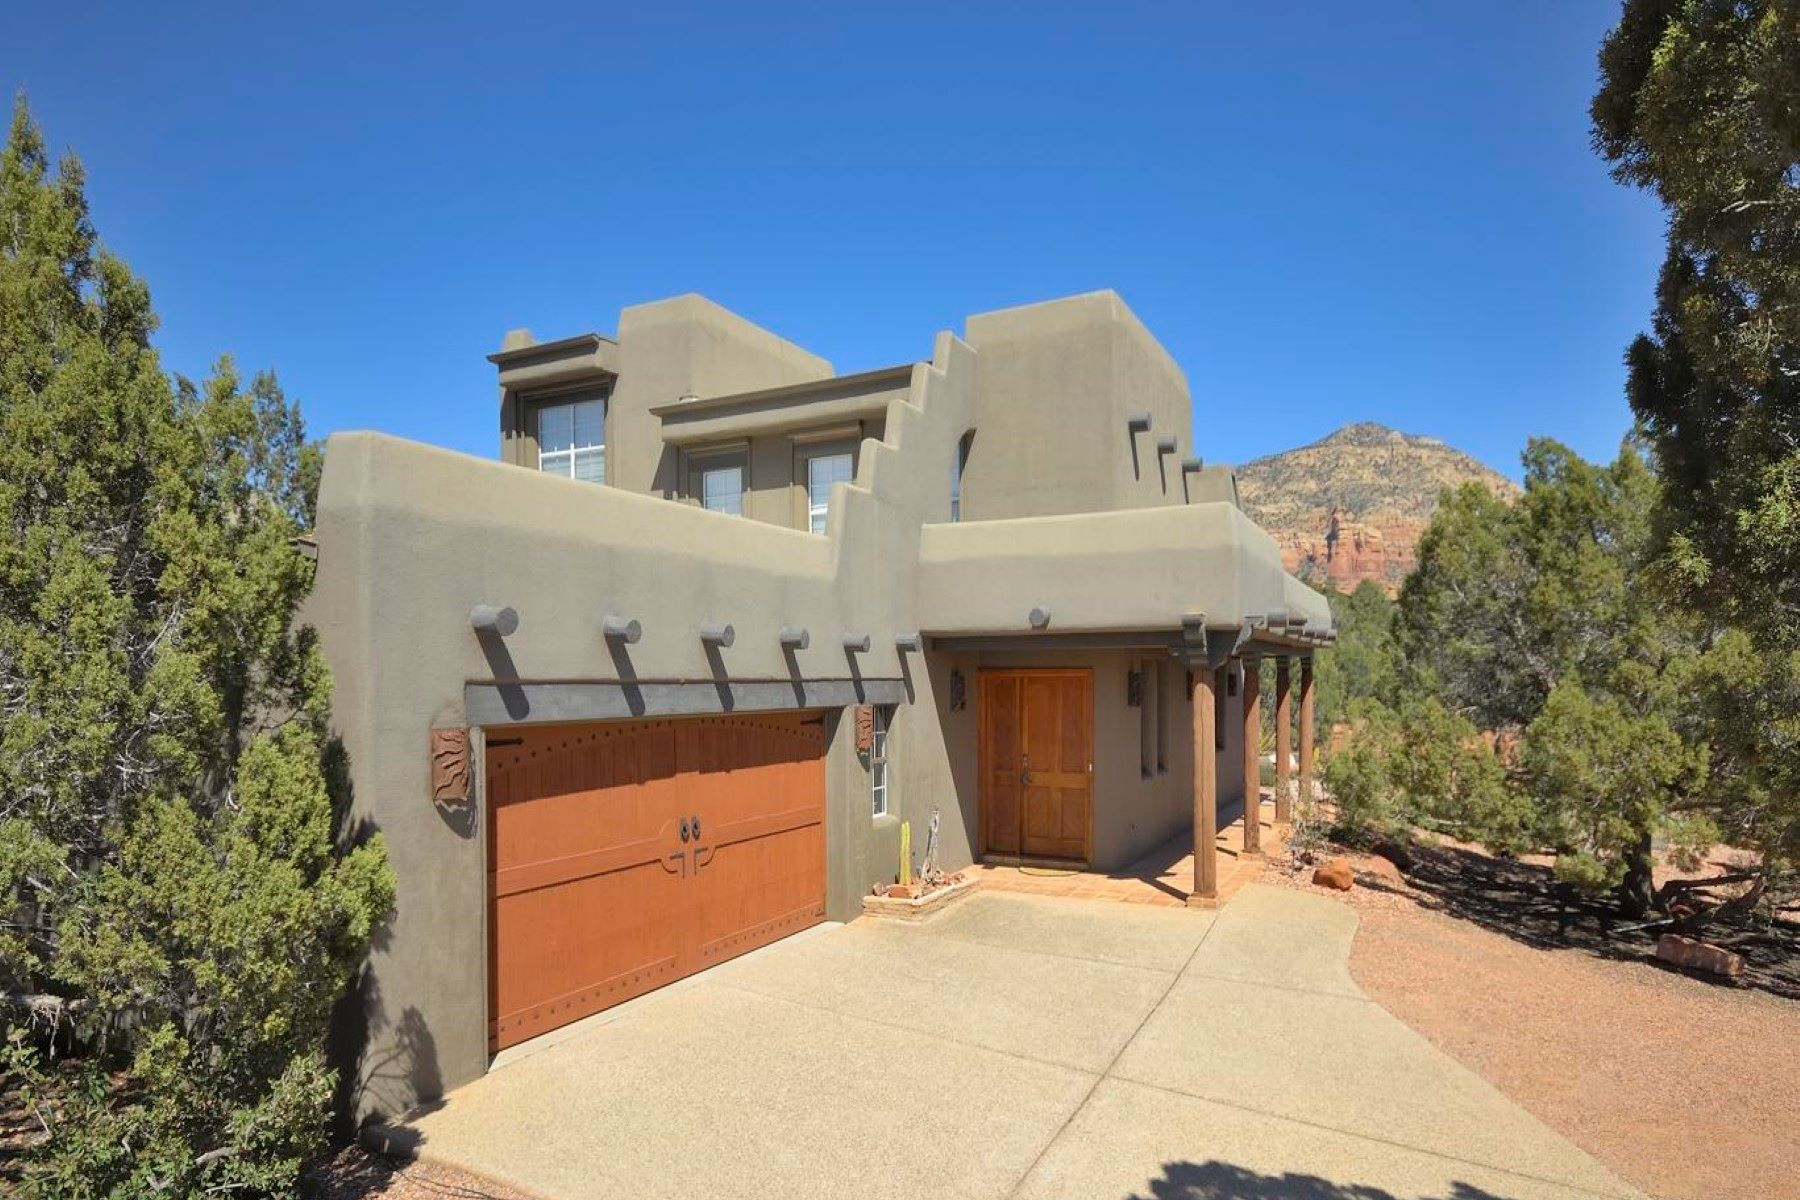 Single Family Homes for Sale at A True Southwestern Pueblo Style Home 48 W Plumage Drive #17 Sedona, Arizona 86336 United States